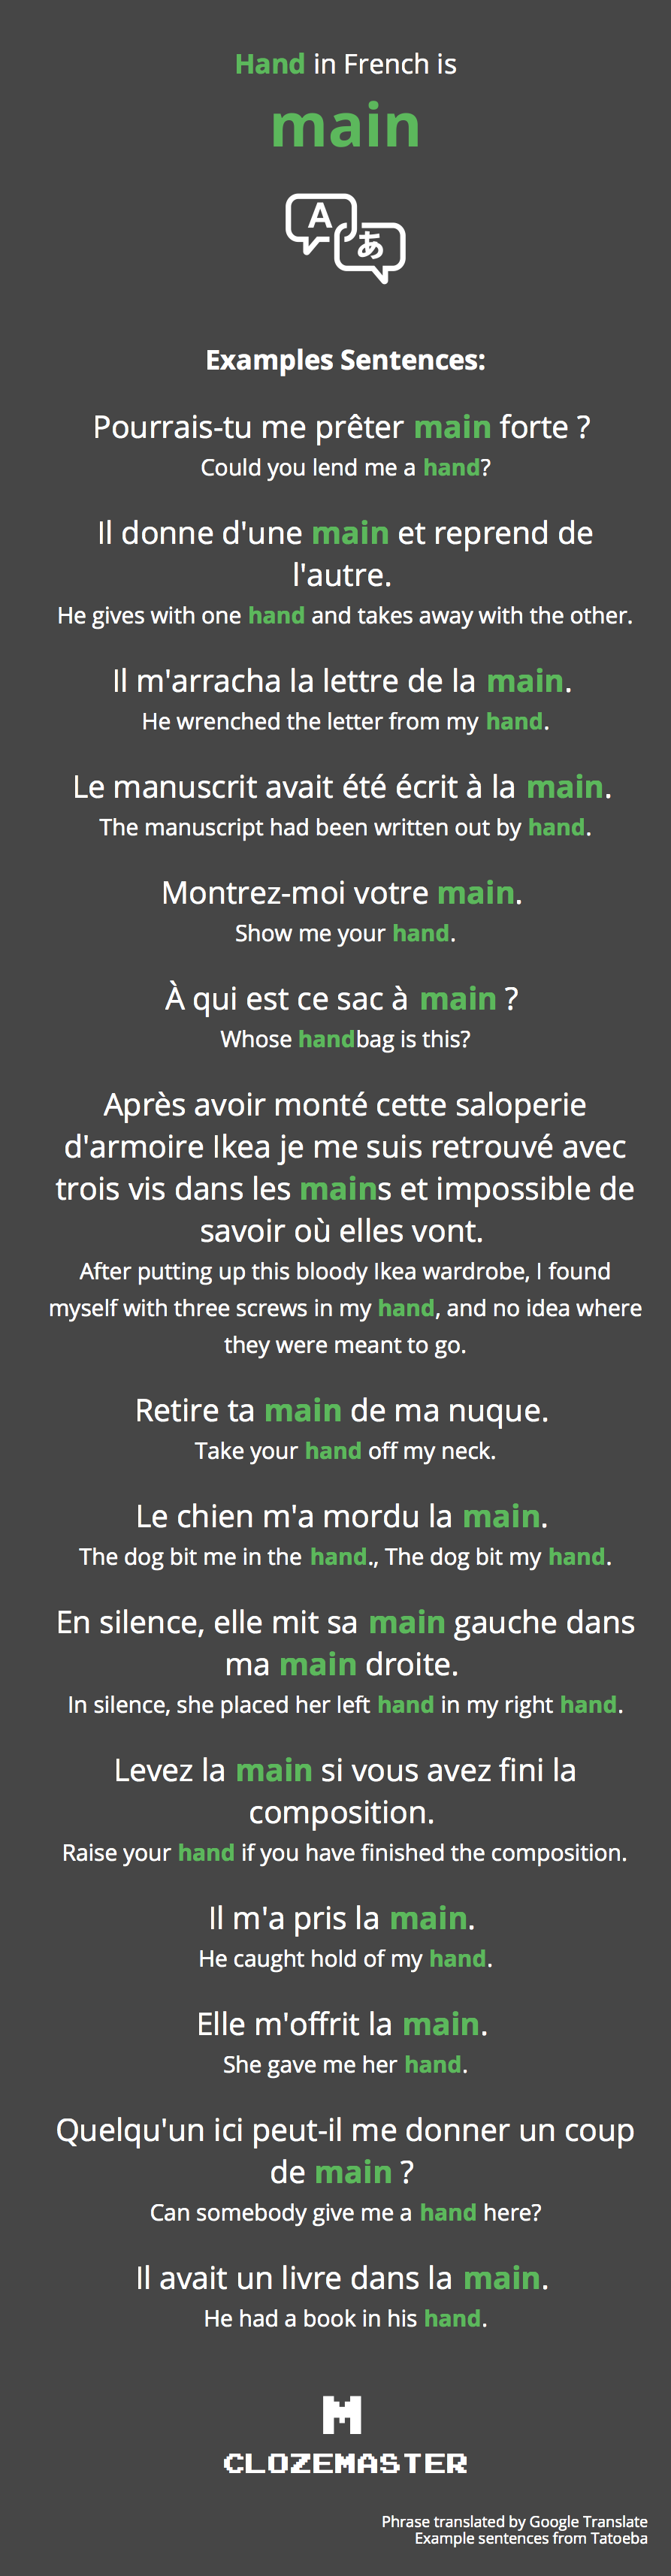 How to say hand in french clozemaster hand in french translation and example sentences solutioingenieria Choice Image